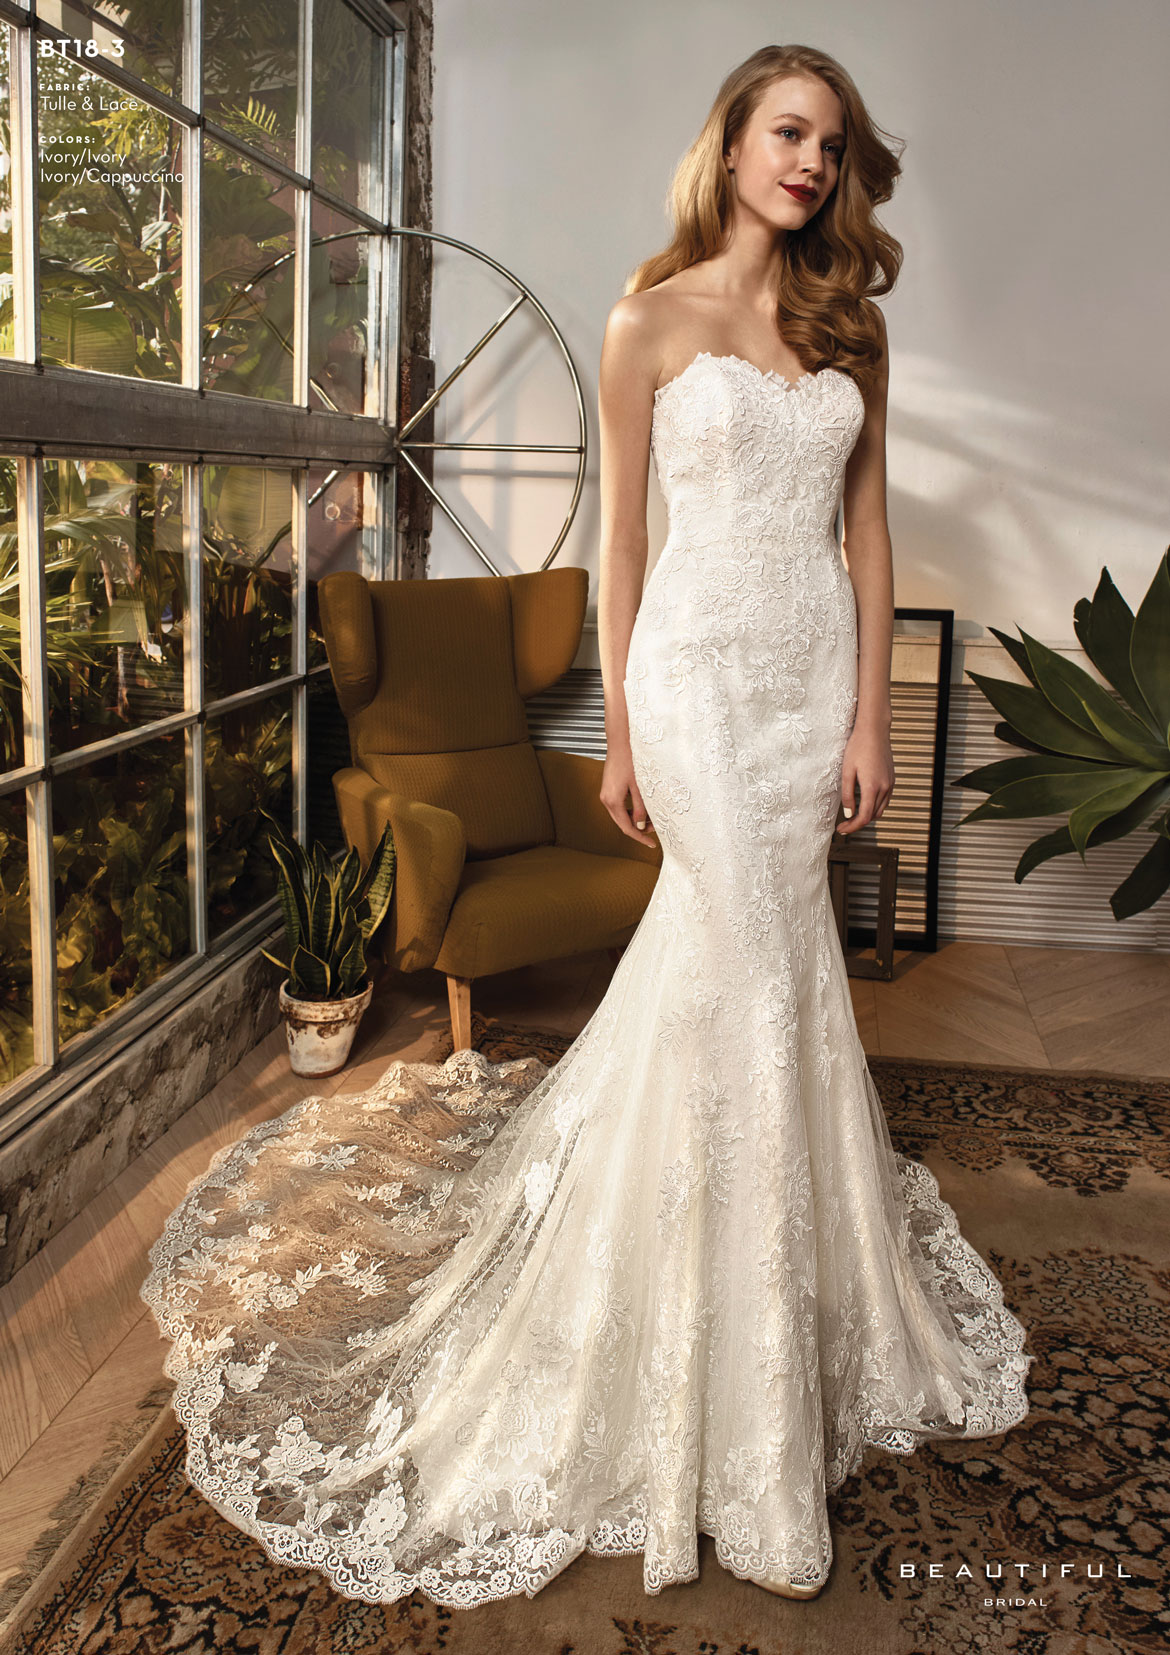 Sposabella Bridal Gowns - Your Wedding Planner Guide